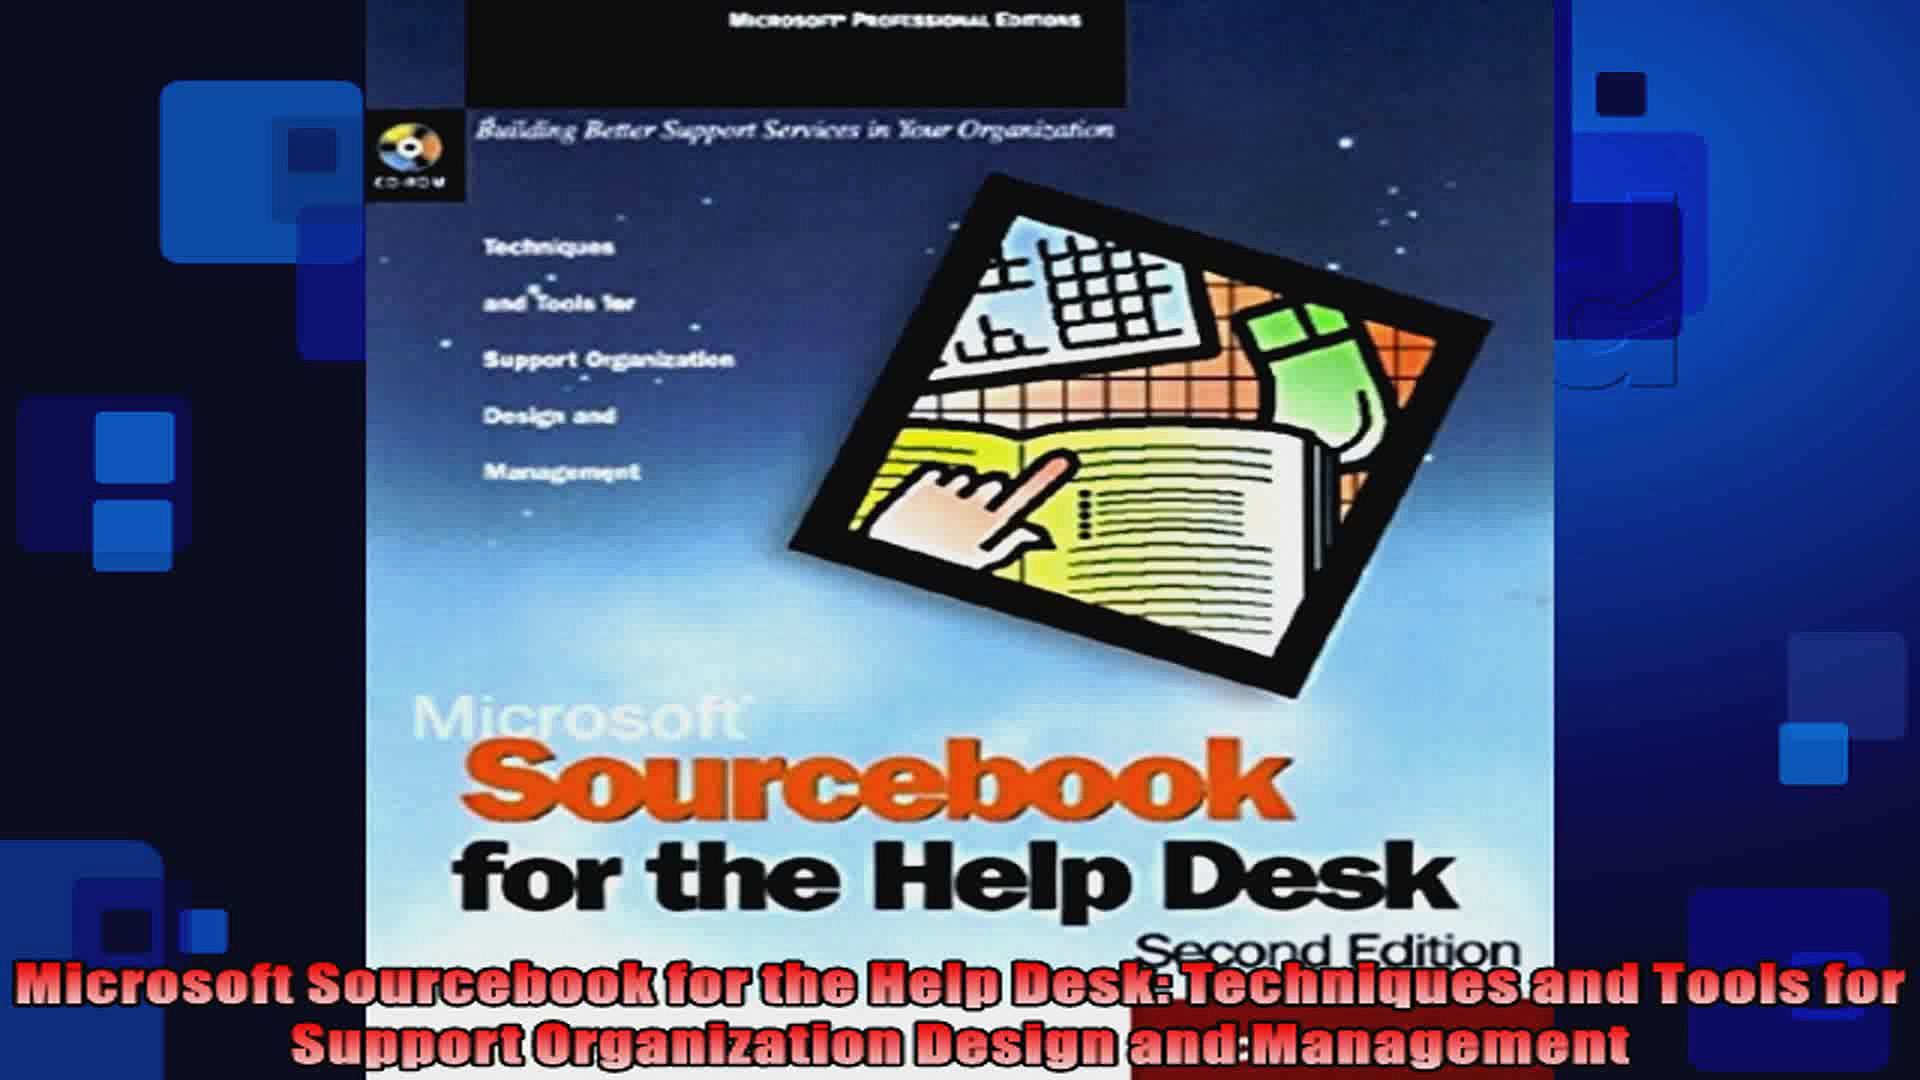 Microsoft Sourcebook for the Help Desk Techniques and Tools for Support Organization